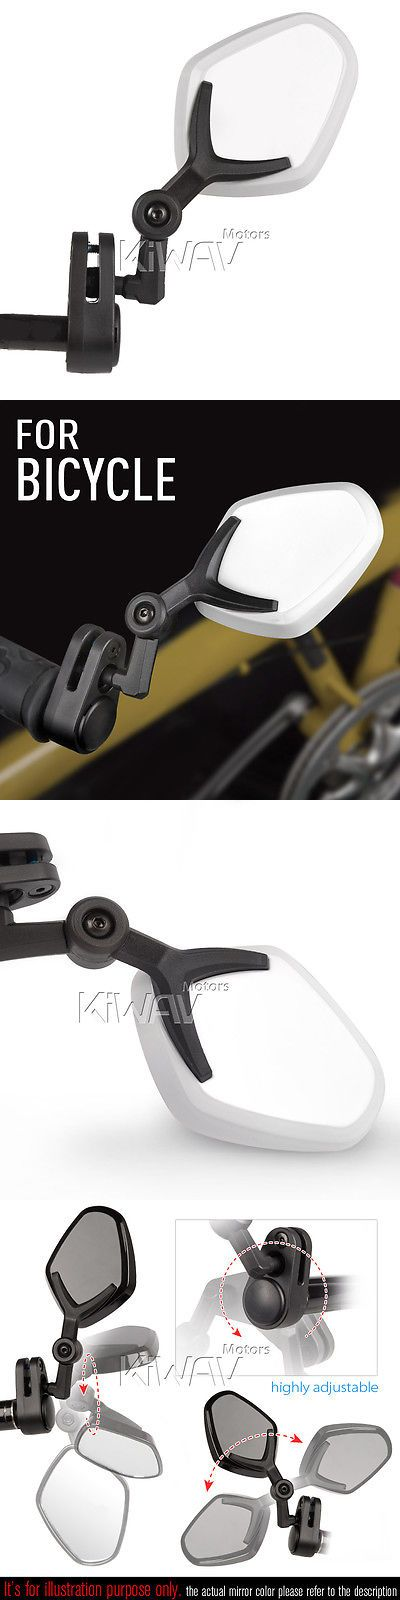 Mirrors 111264: 360° Rotate Adjust Bike Safety Mirror Bar End Petal Convex White -> BUY IT NOW ONLY: $39 on eBay!